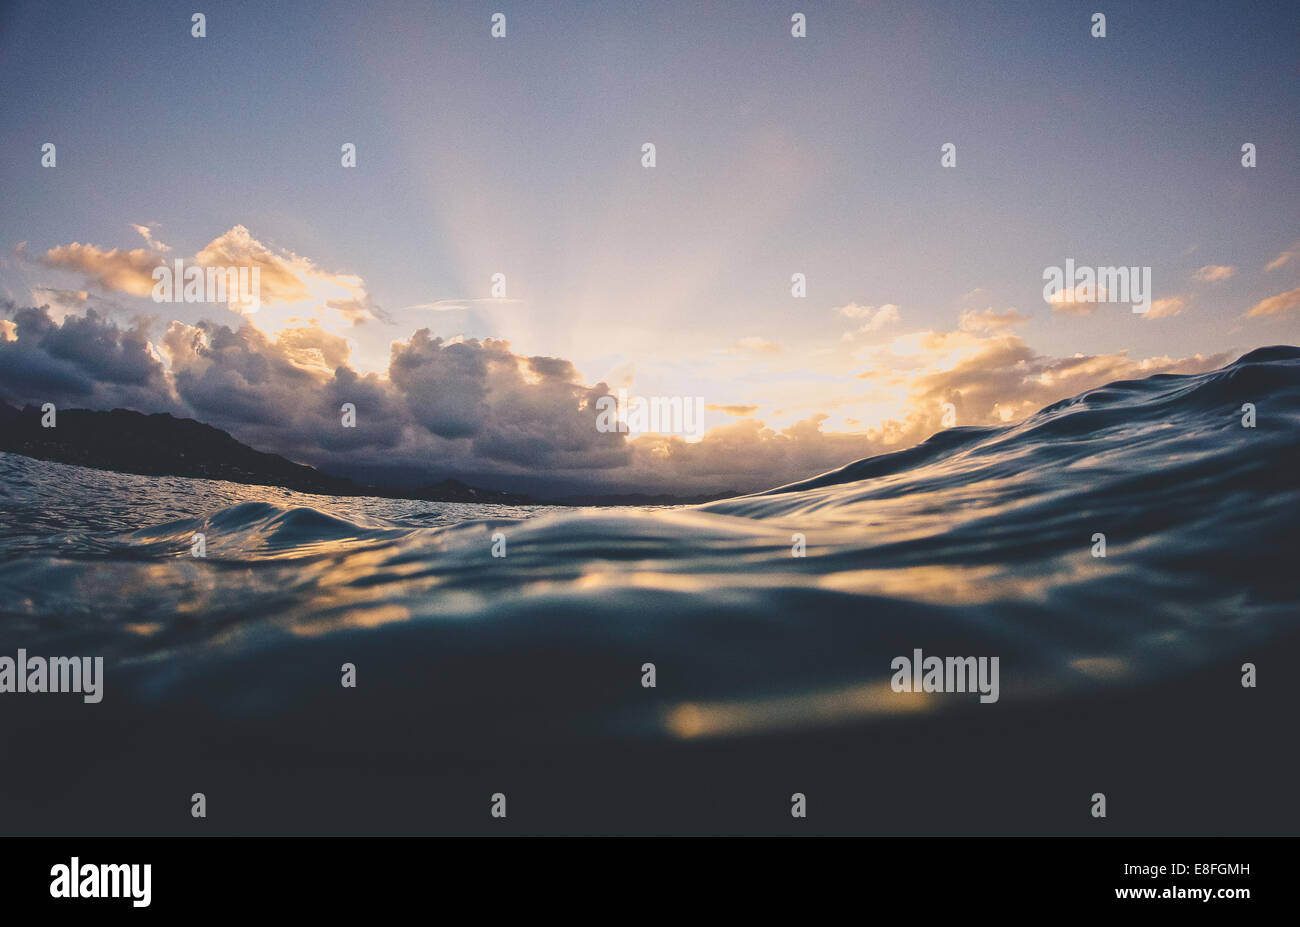 Water surface of ocean at sunset, Hawaii, America, USA - Stock Image